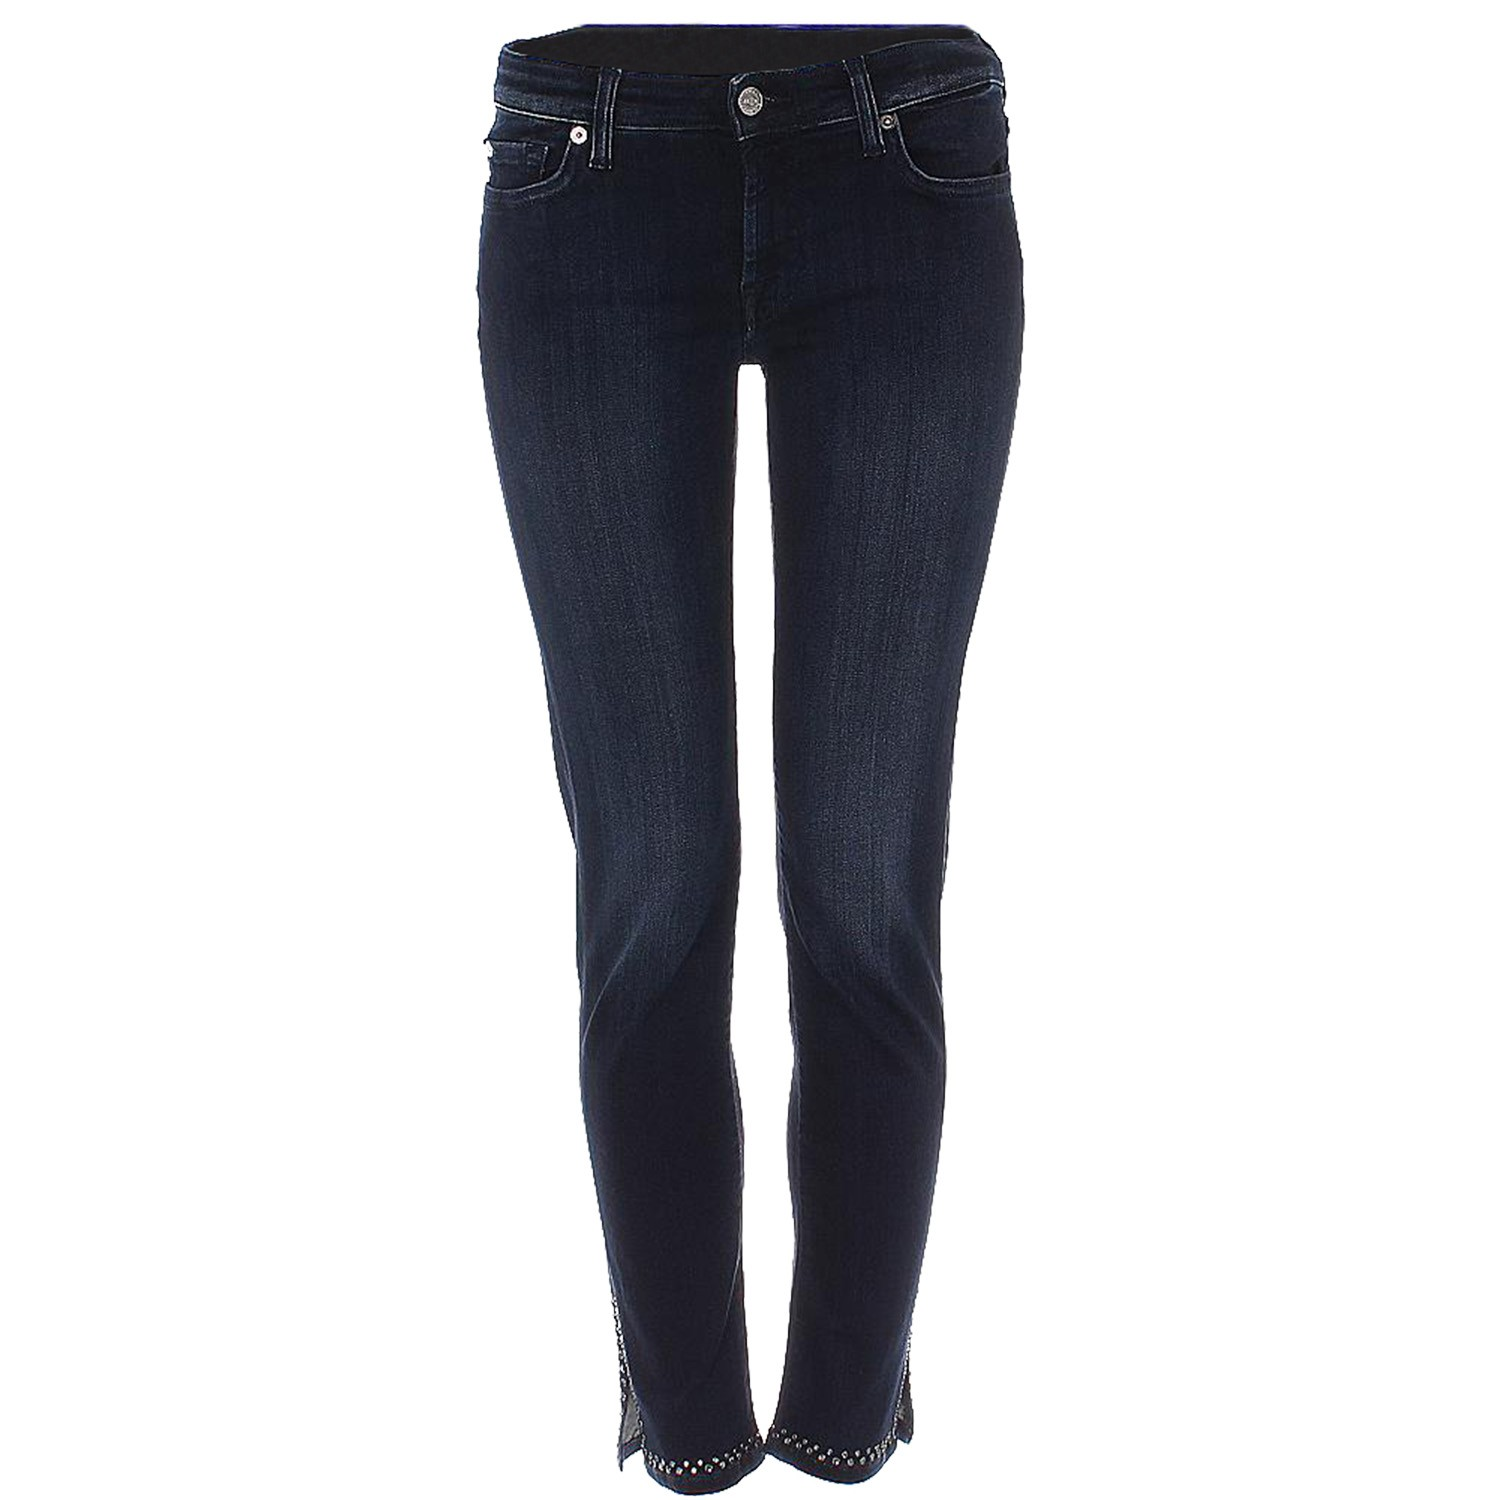 Afbeelding van 7 For All Mankind Jsl4a23cal blauw